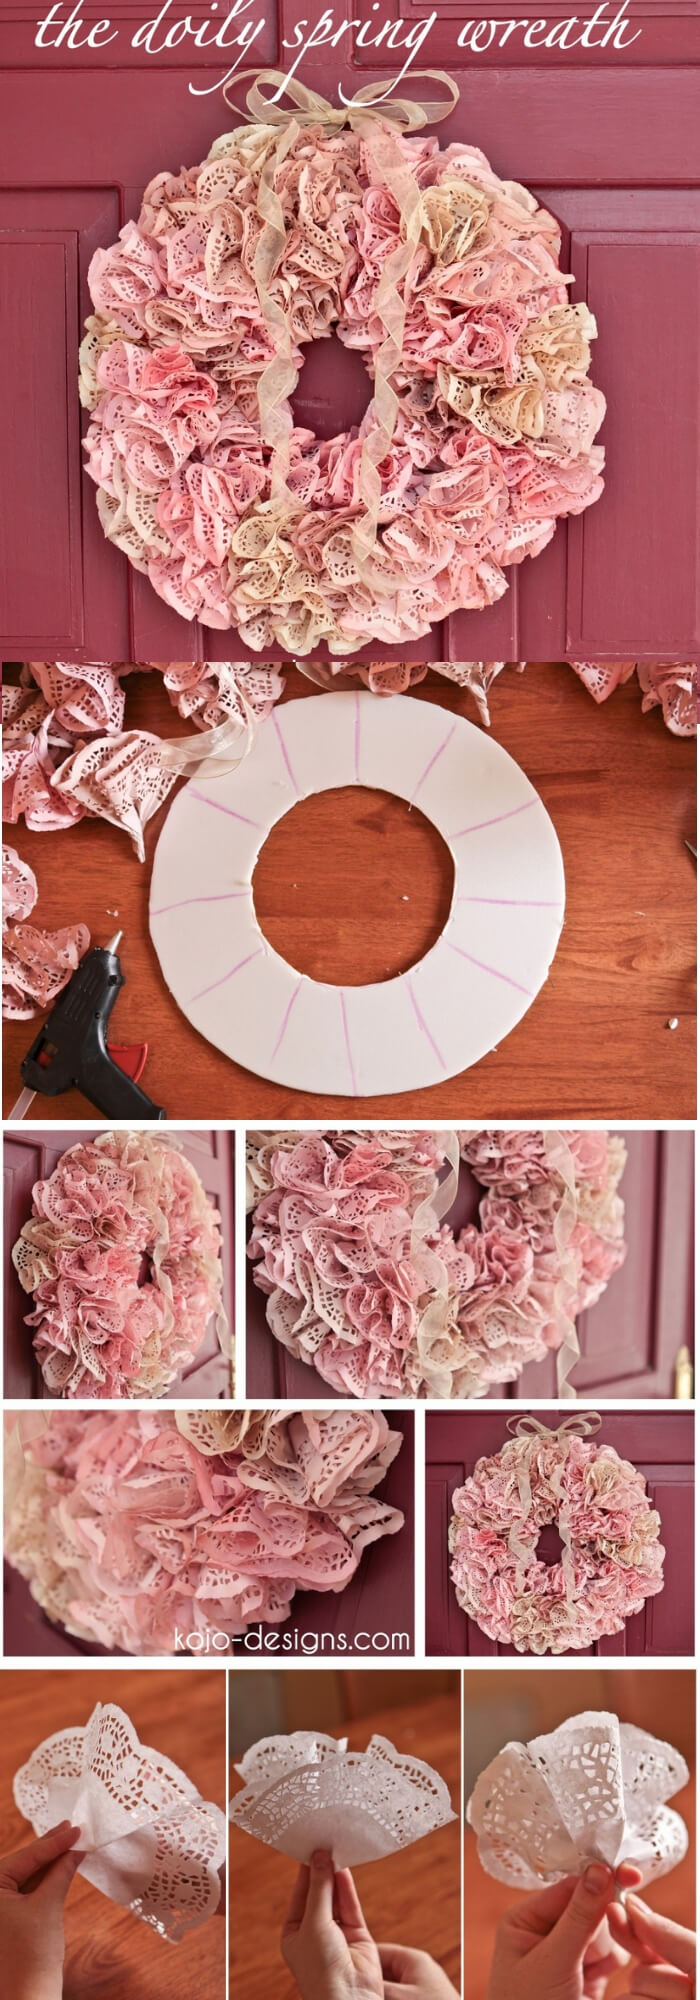 Easy and Simple DIY Spring Wreath Ideas | Thedoily Spring Wreath